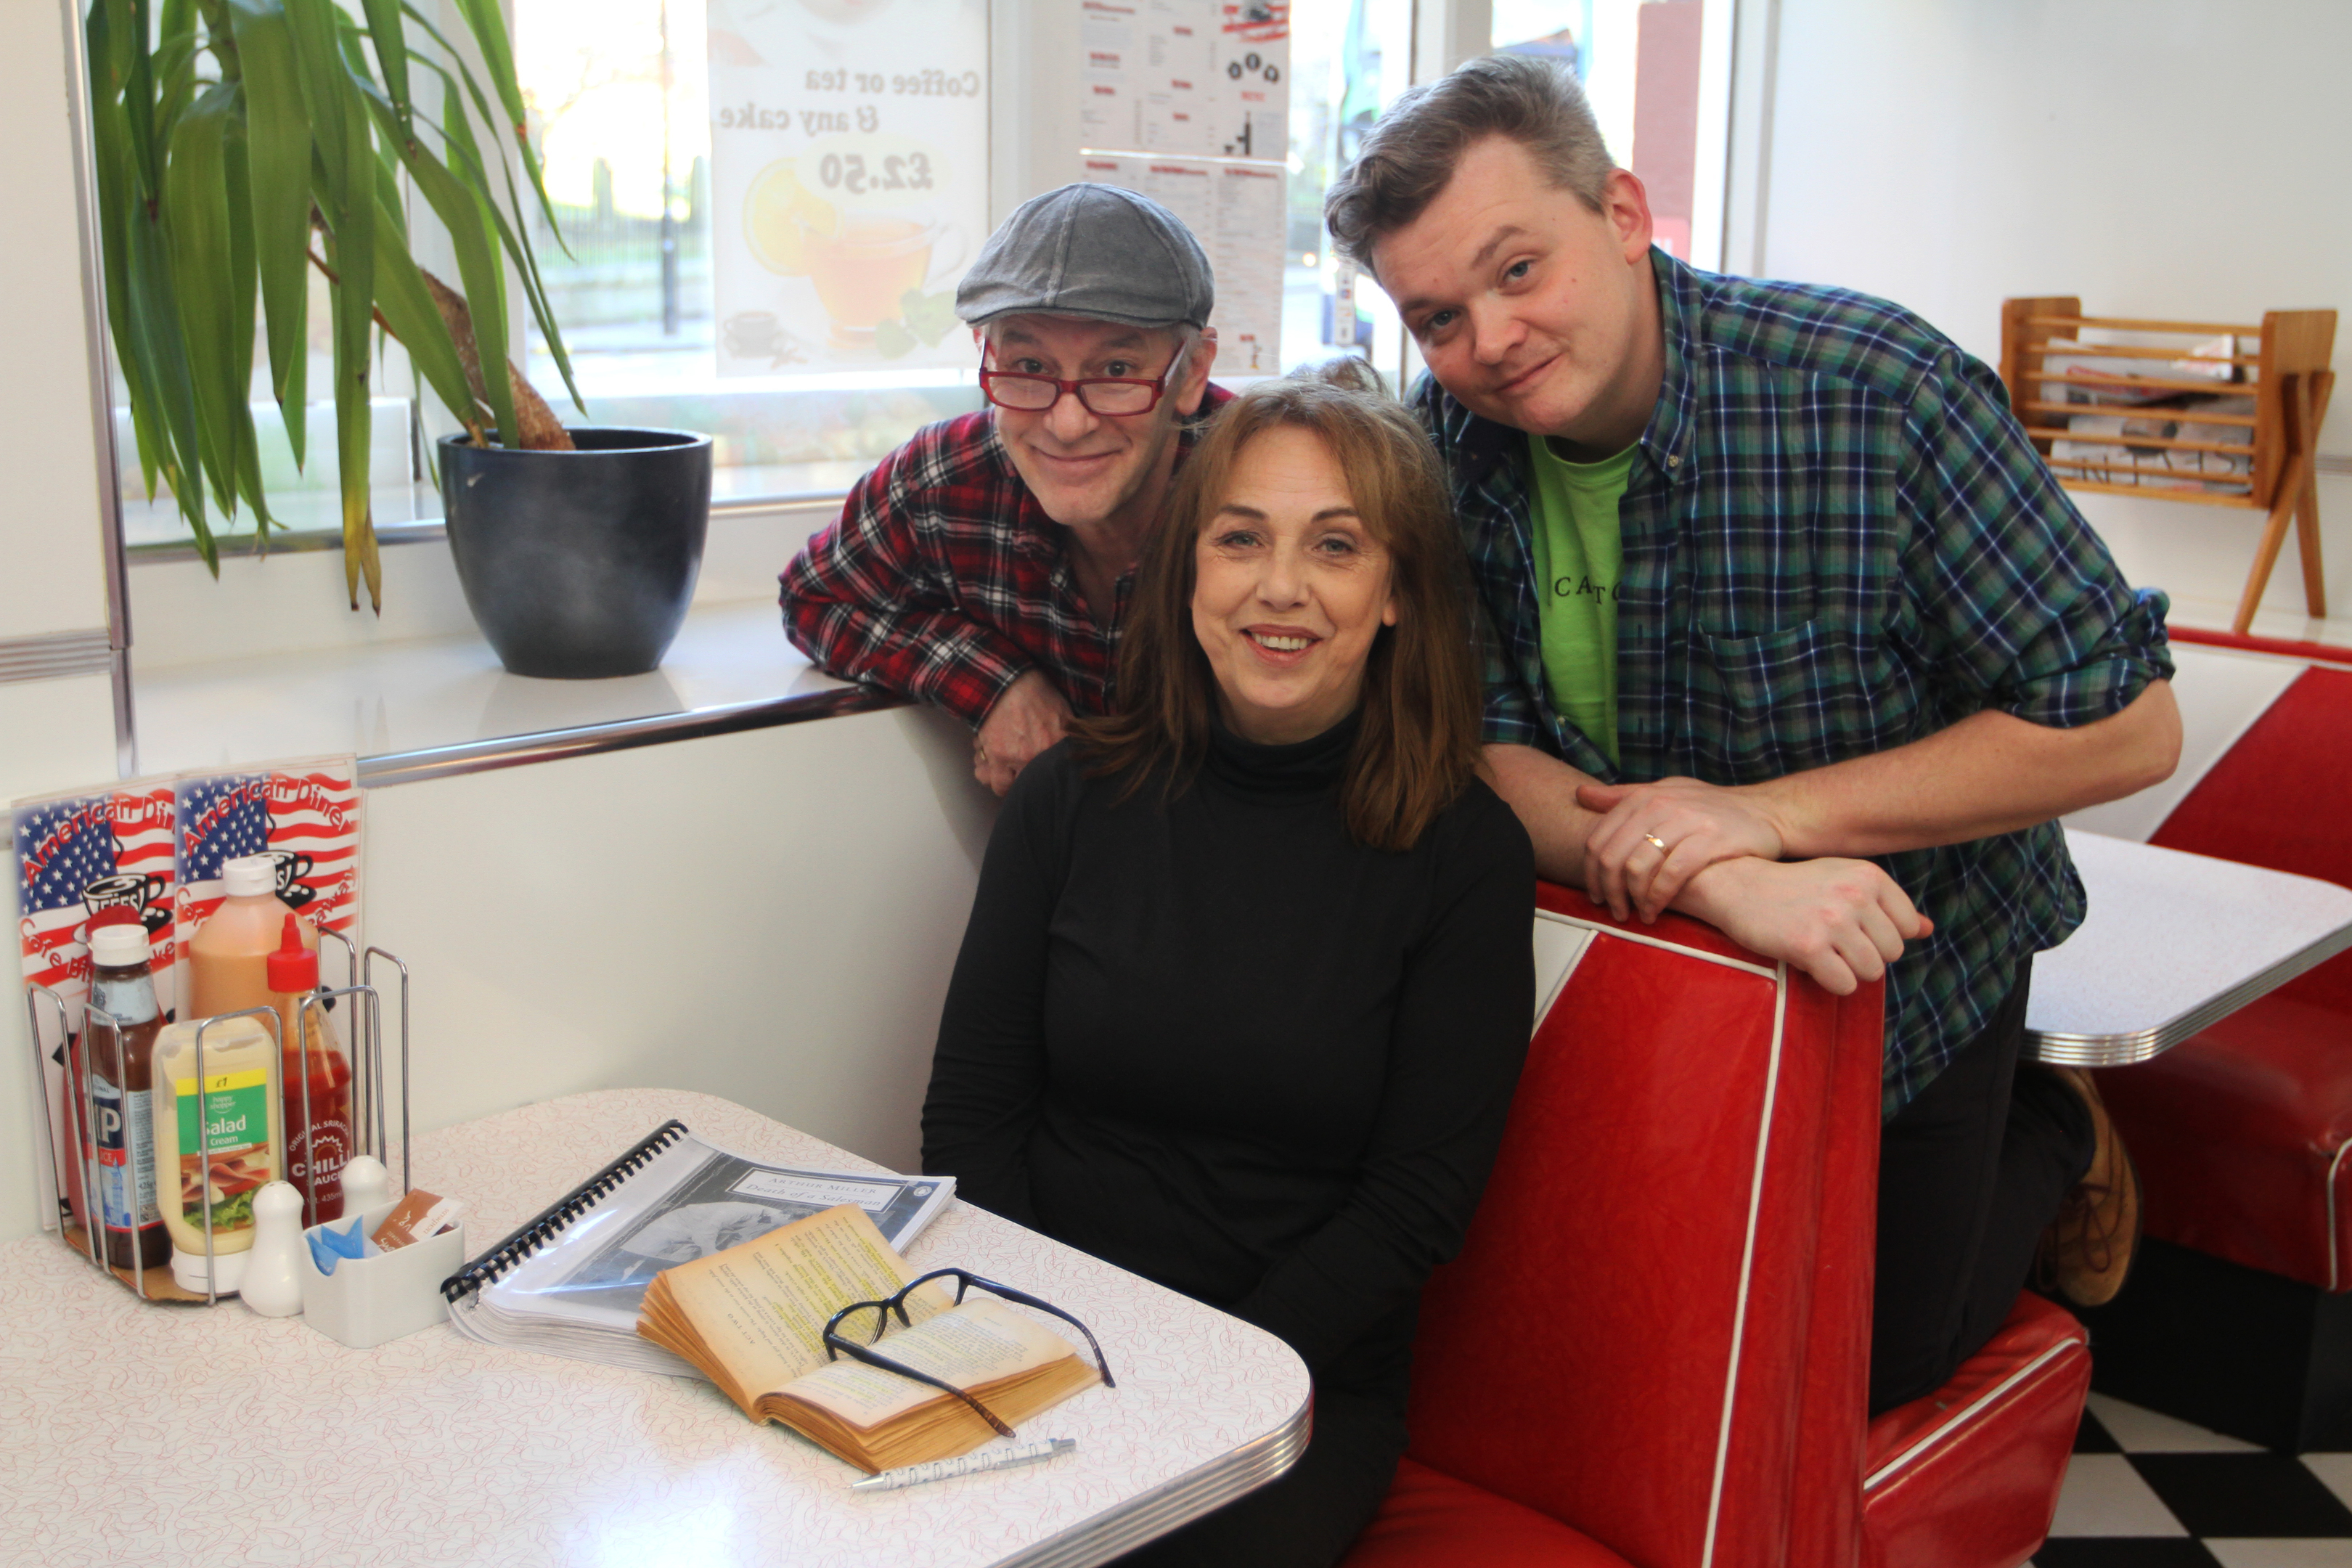 Irene Macdougall (playing Linda, front) and back row Billy Mack (playing Willy) and director Joe Douglas.